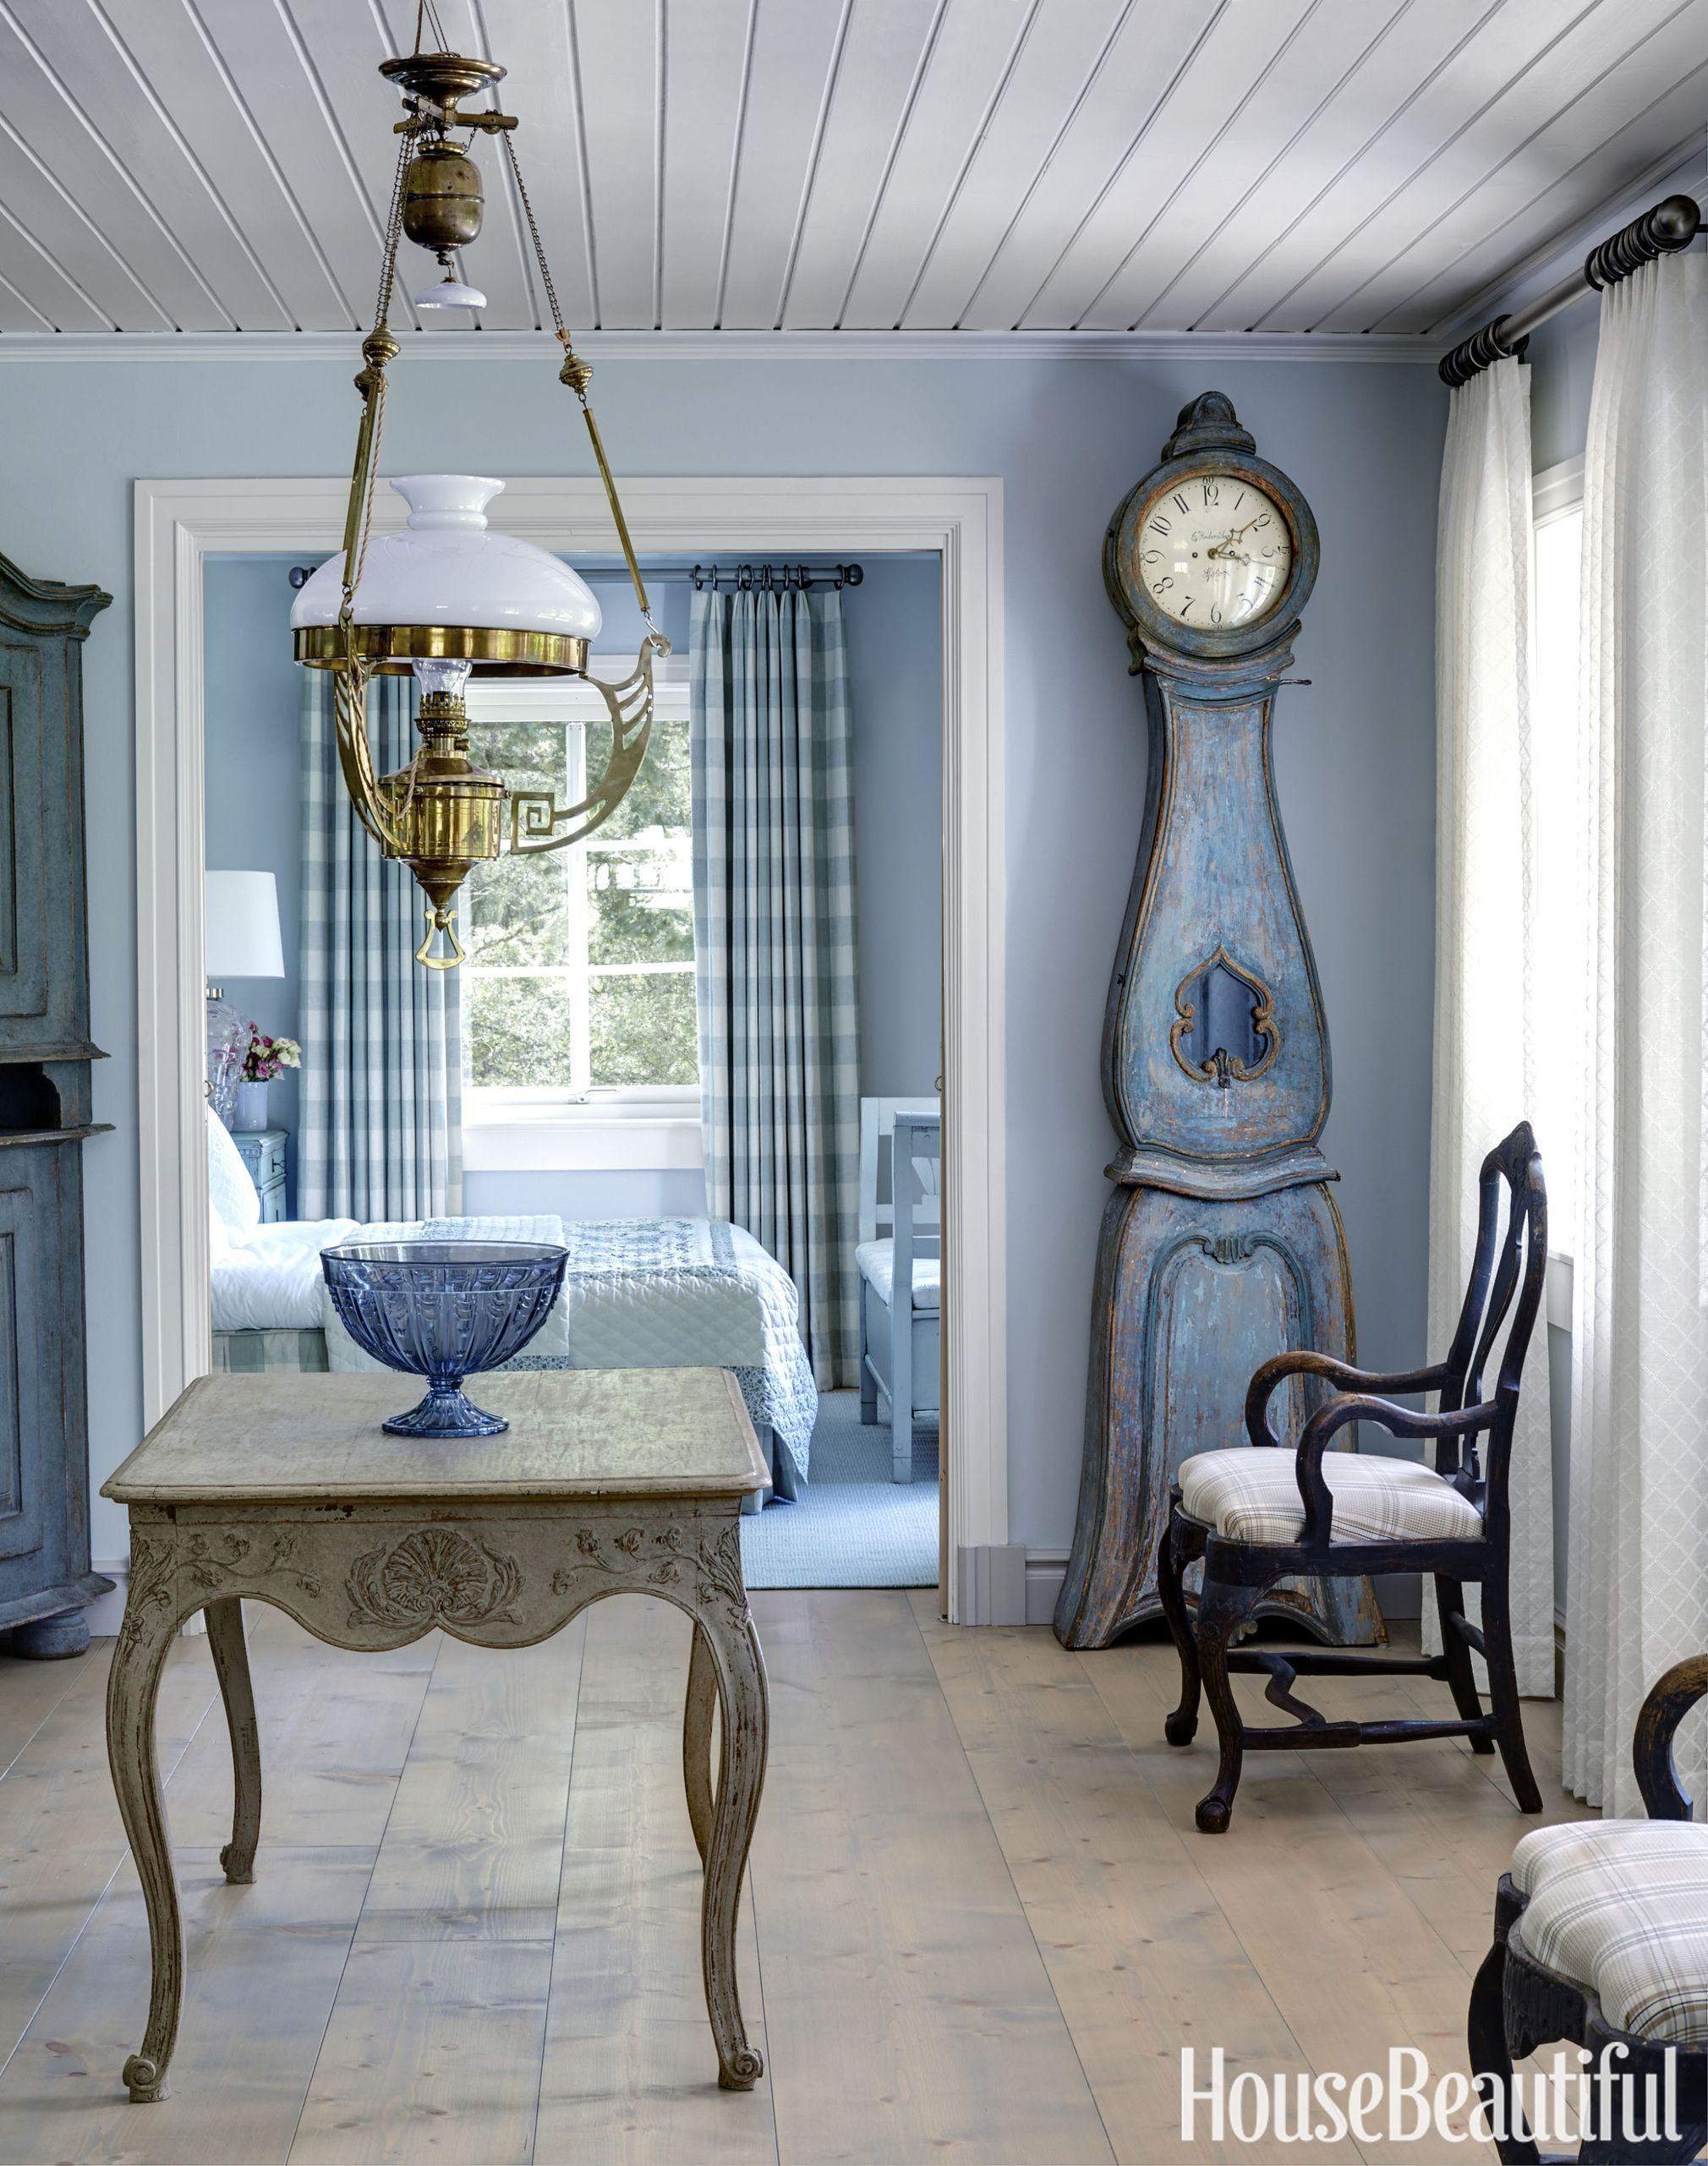 French Country Style - French Country Interior Decor